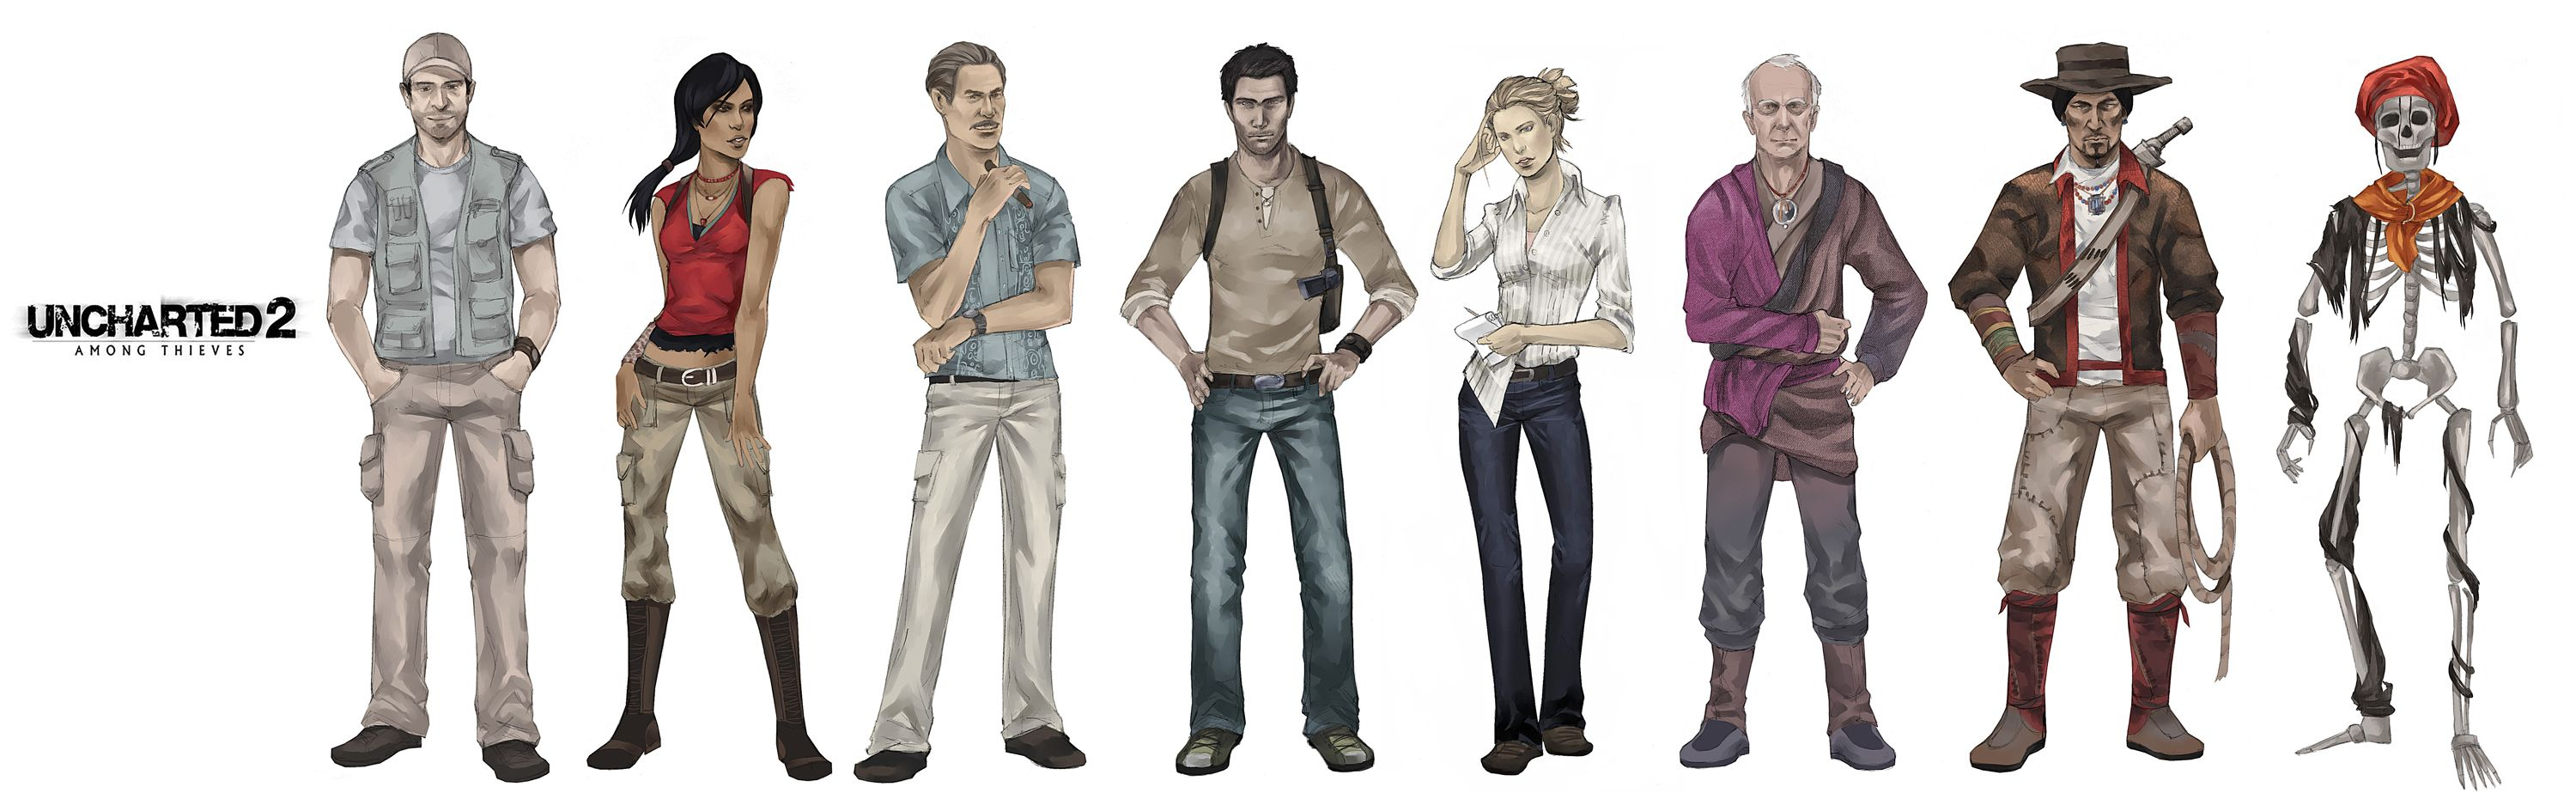 The Heroes of Uncharted 2 by ~fire-spirited on deviantART ...